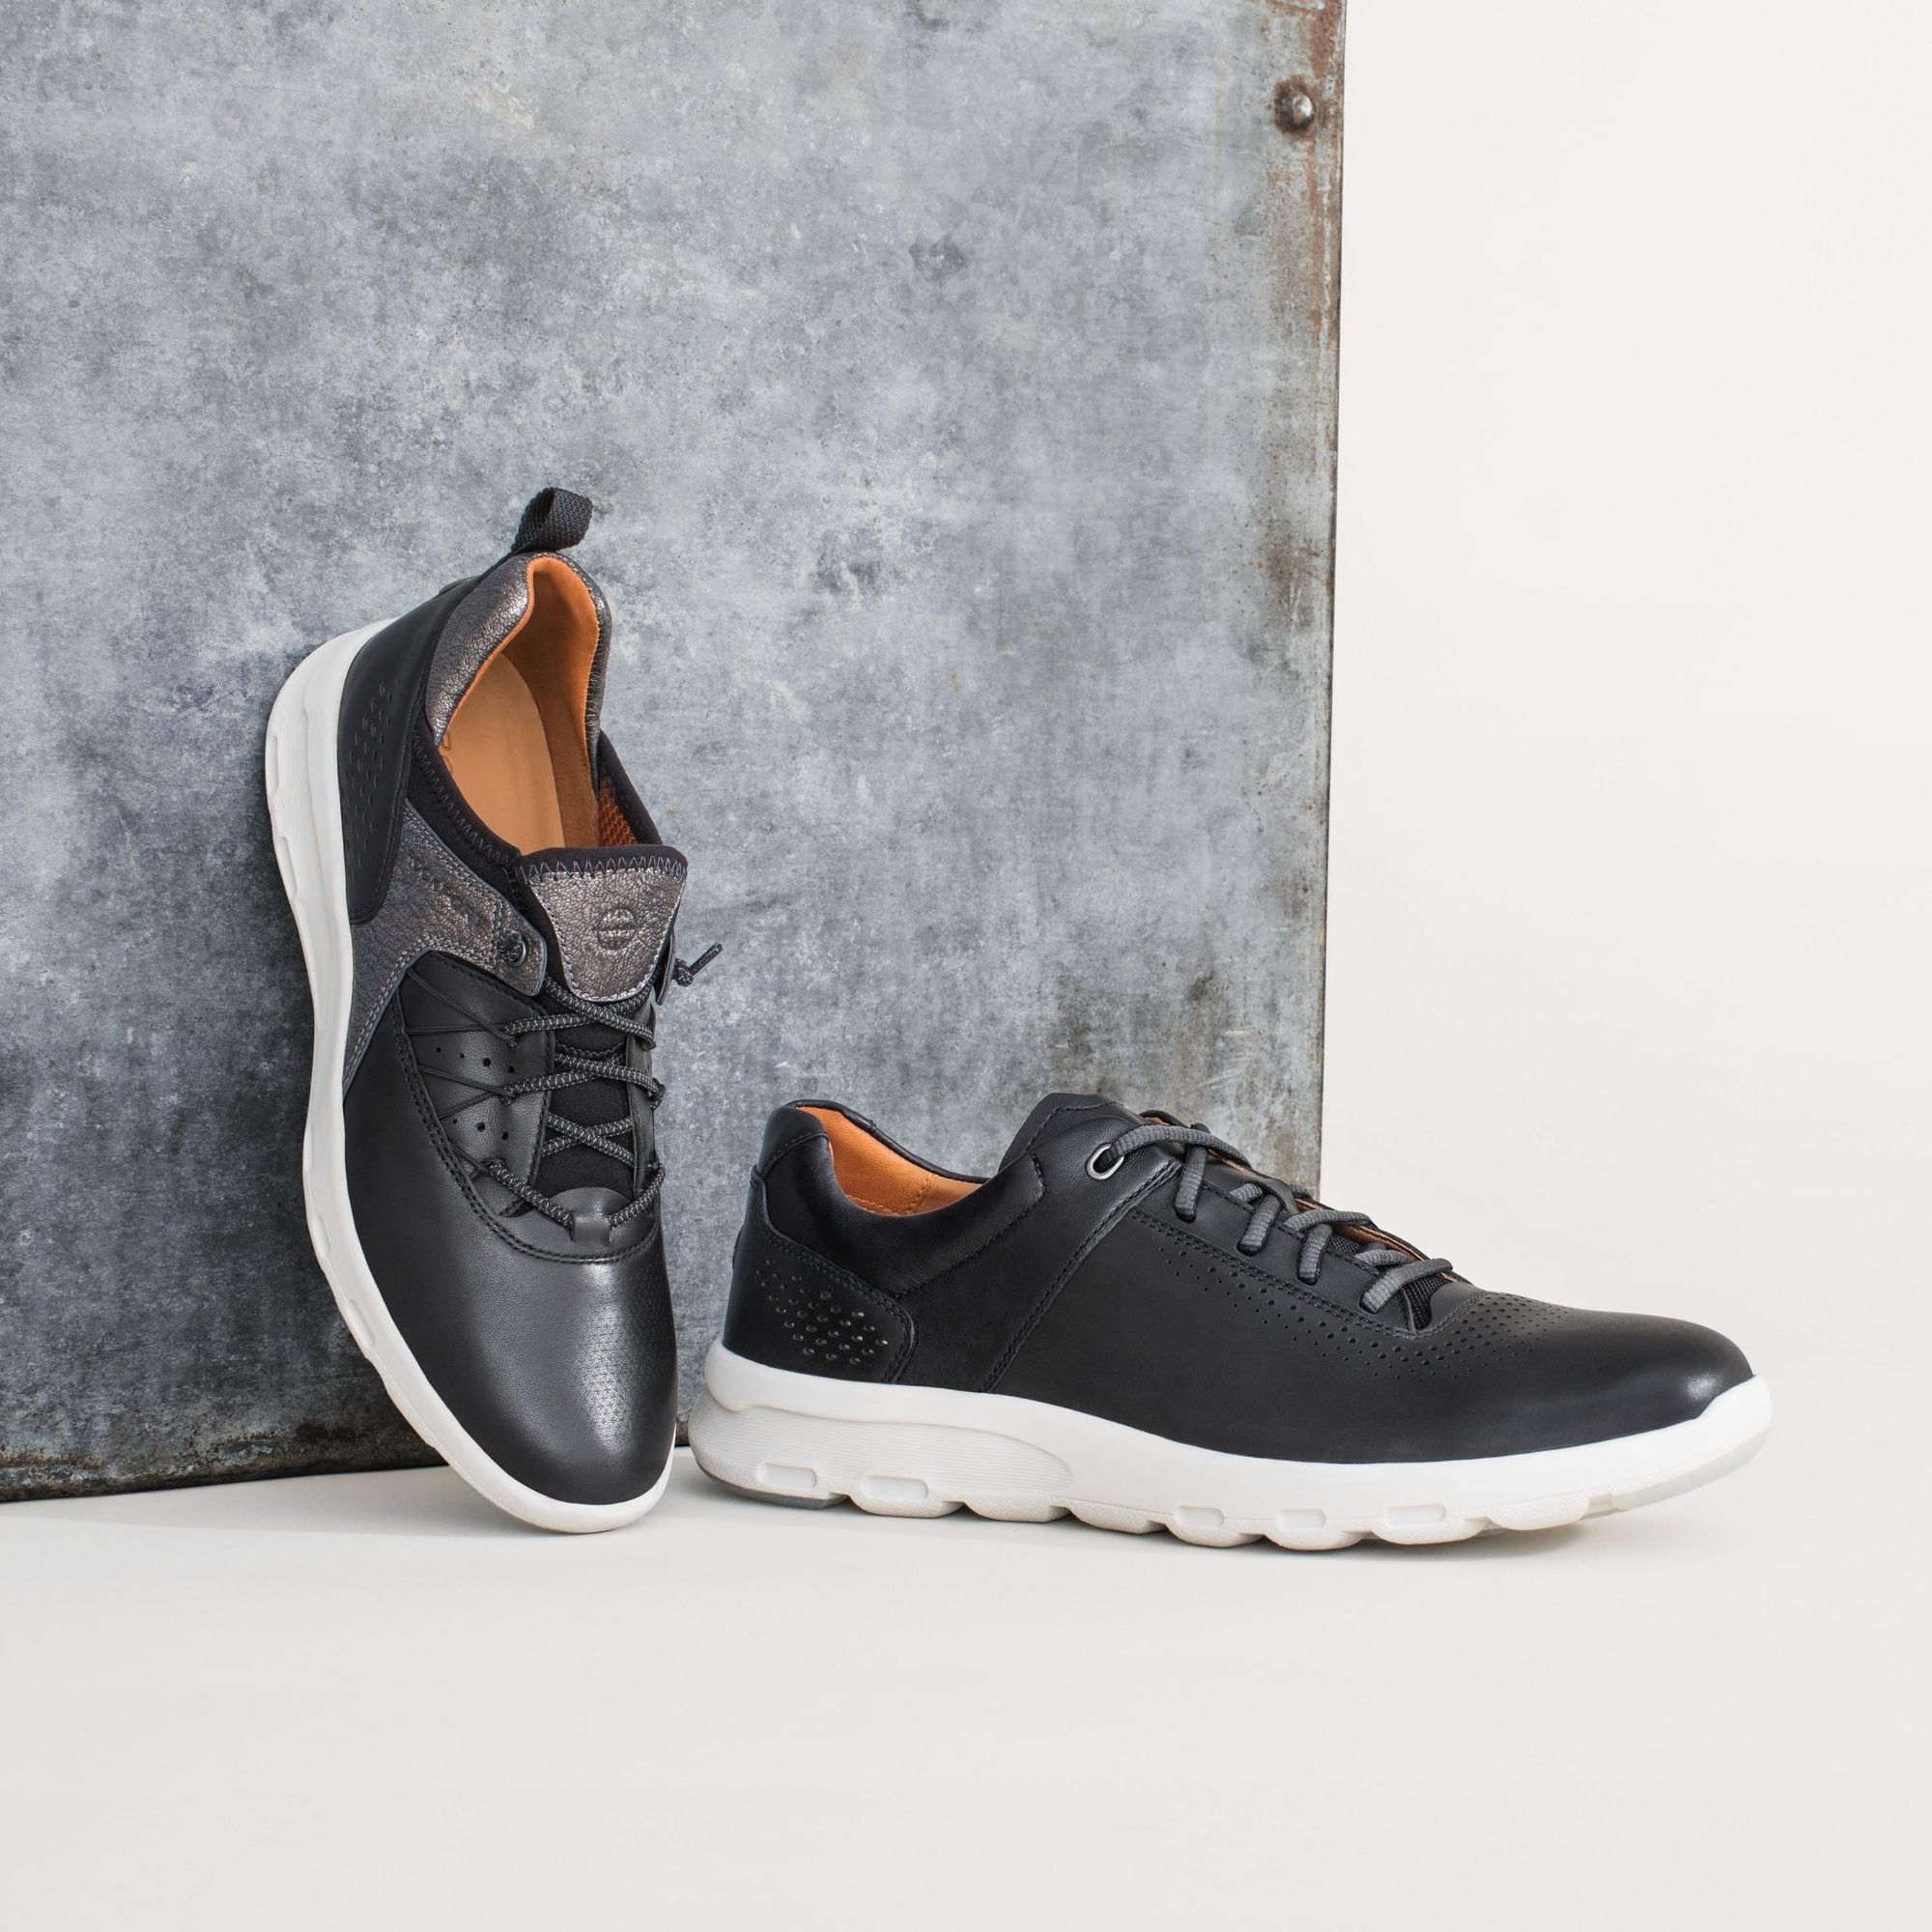 Lets' Walk: his and hers sneakers